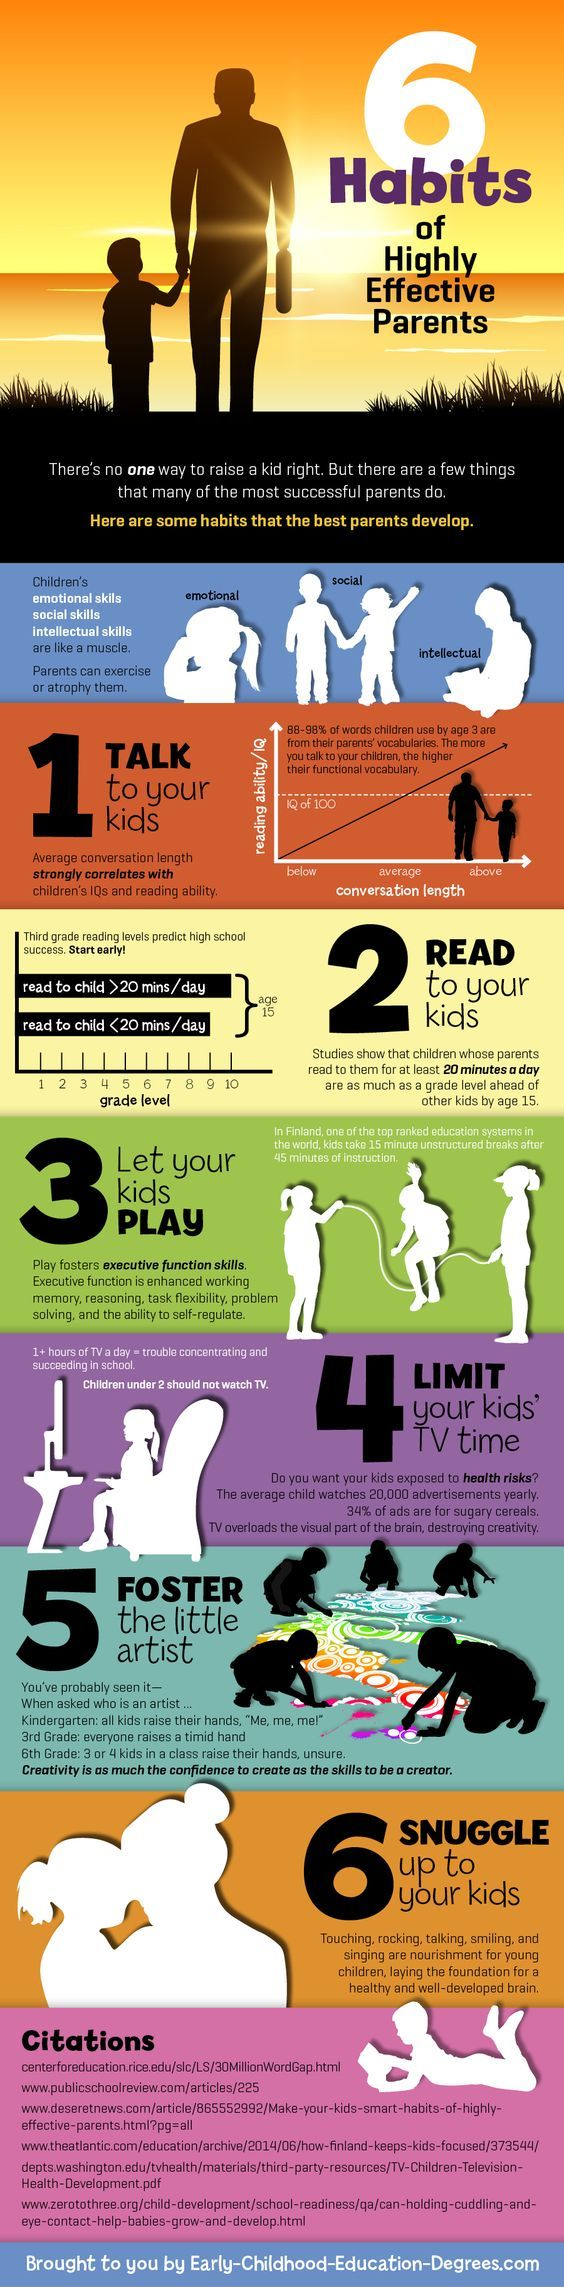 Habits of Effective Parents Infographic. Visit http://www.counselinginsite.com/about.html for more information and resources from Counseling Insite. Knowledge is Power